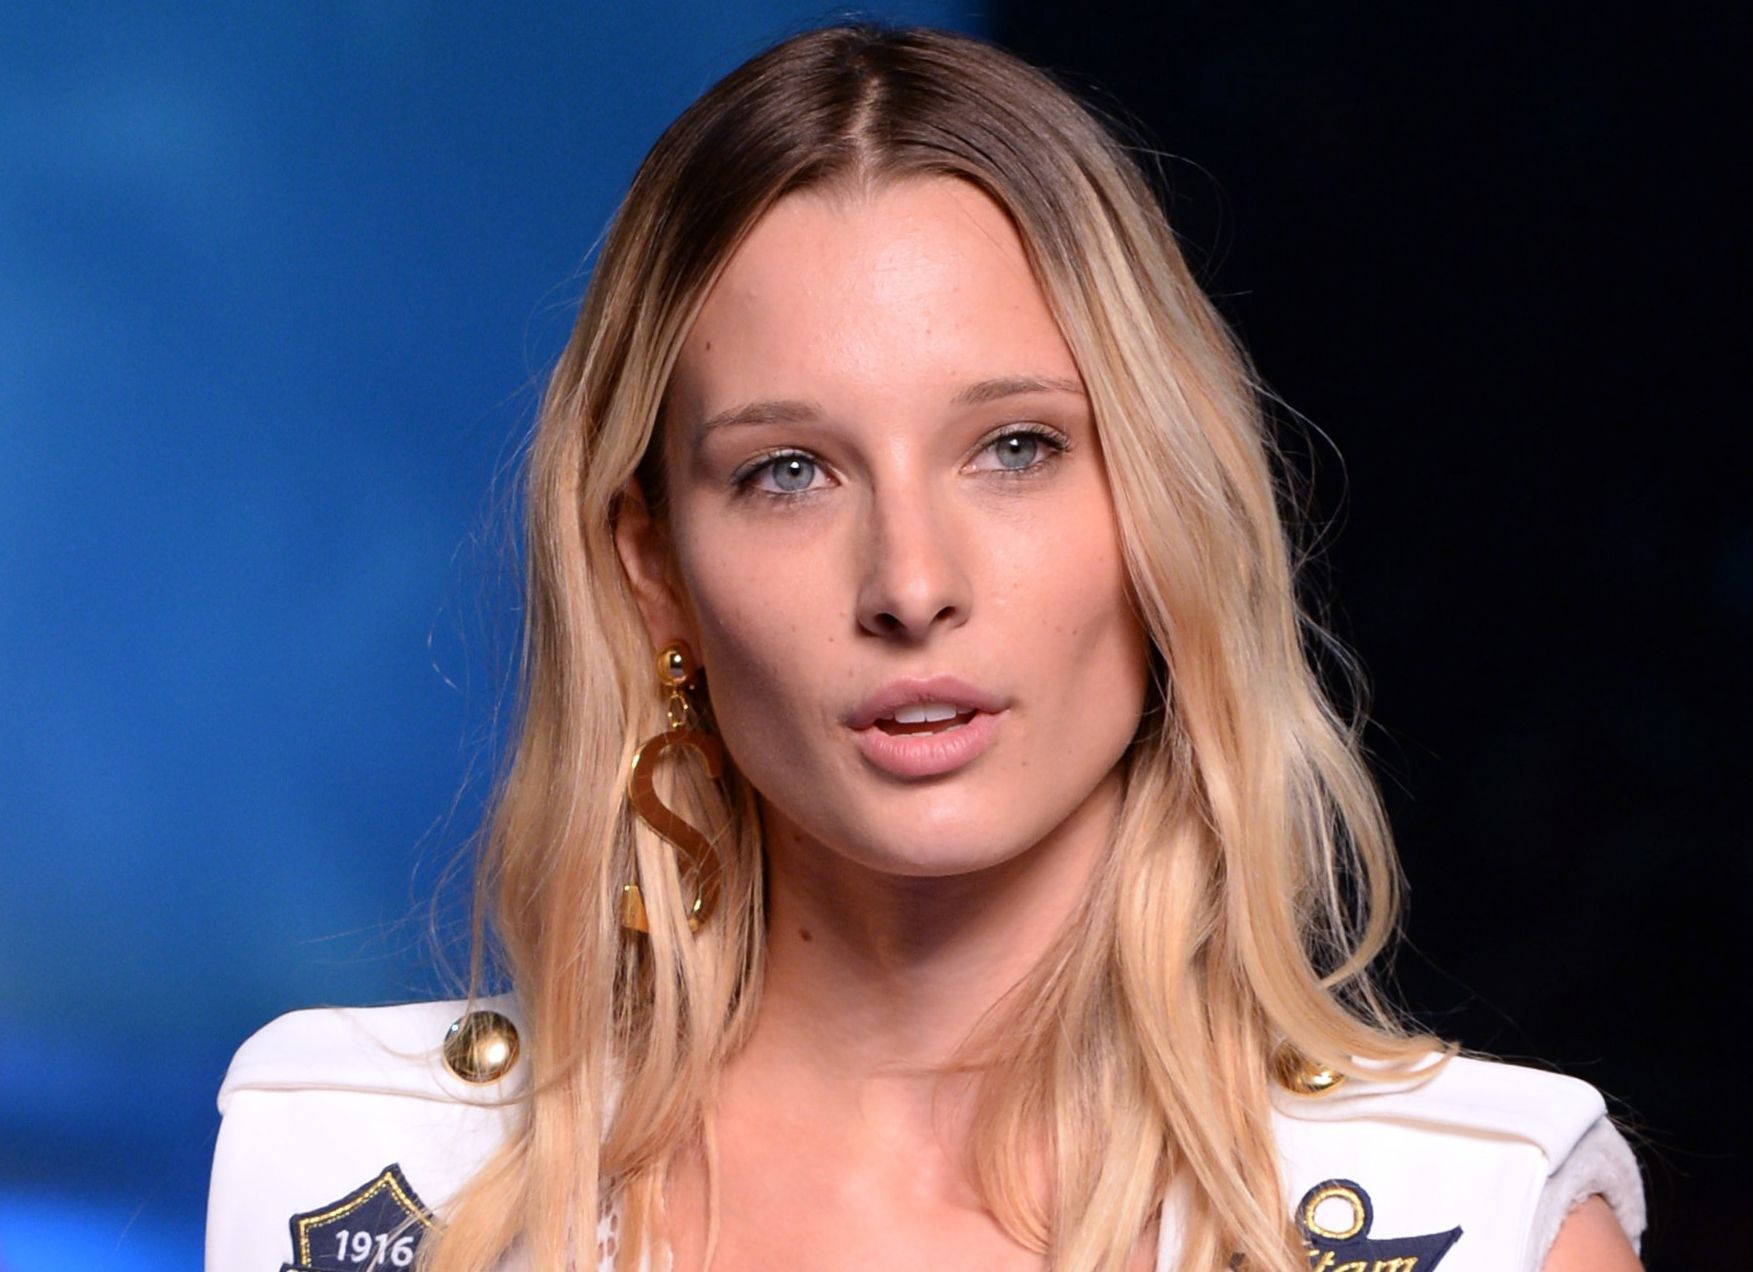 Ilona Smet la fille d'Estelle Lefébure illumine le défilé Etam avec son beauty look naturel